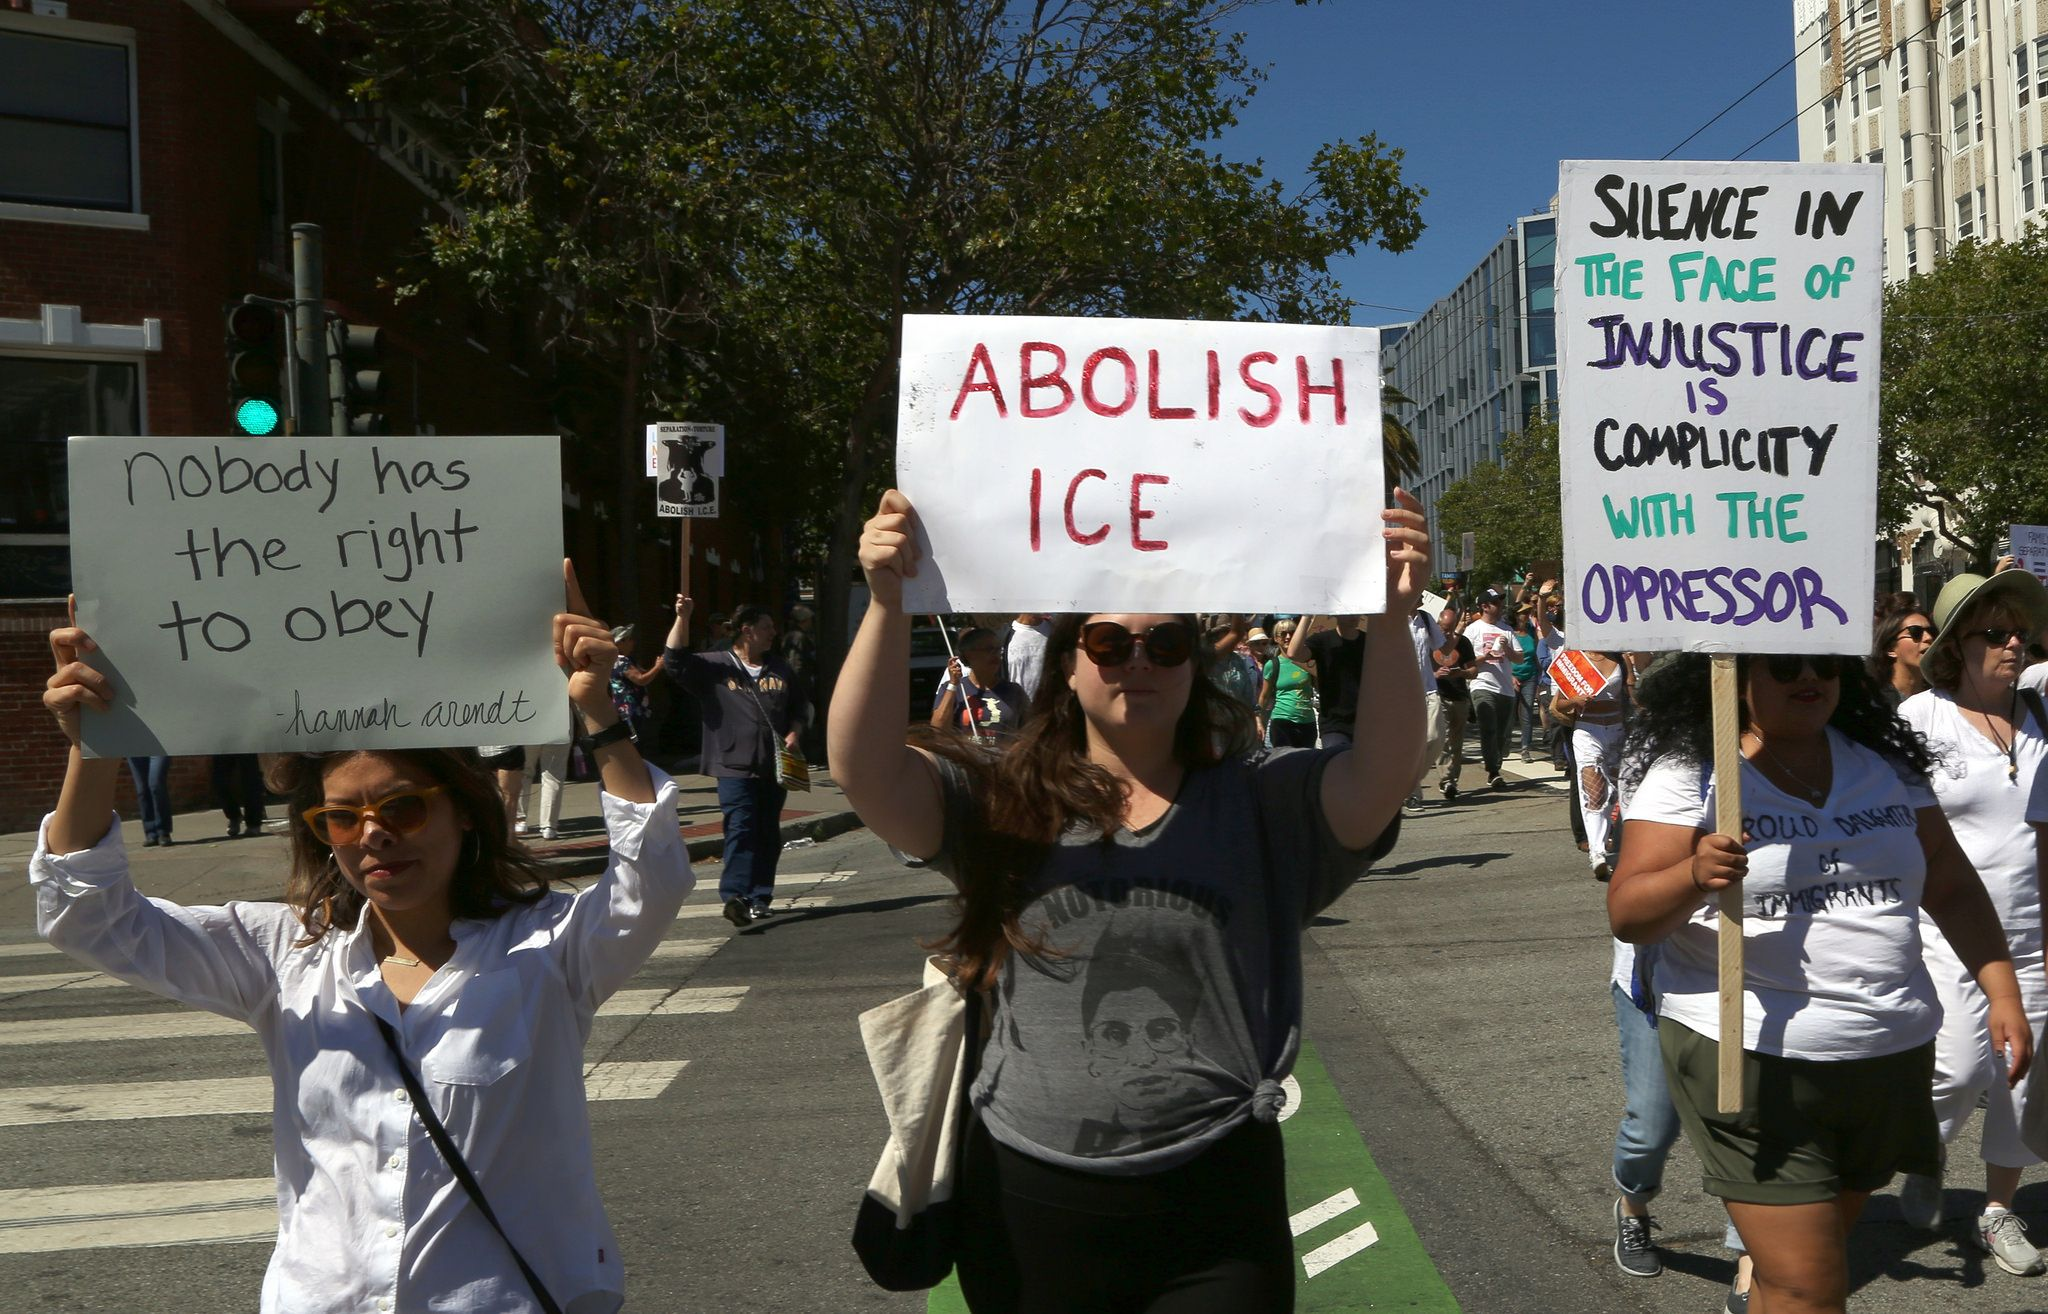 Pin On 2018 06 30 Families Belong Together March And Rally San Francisco